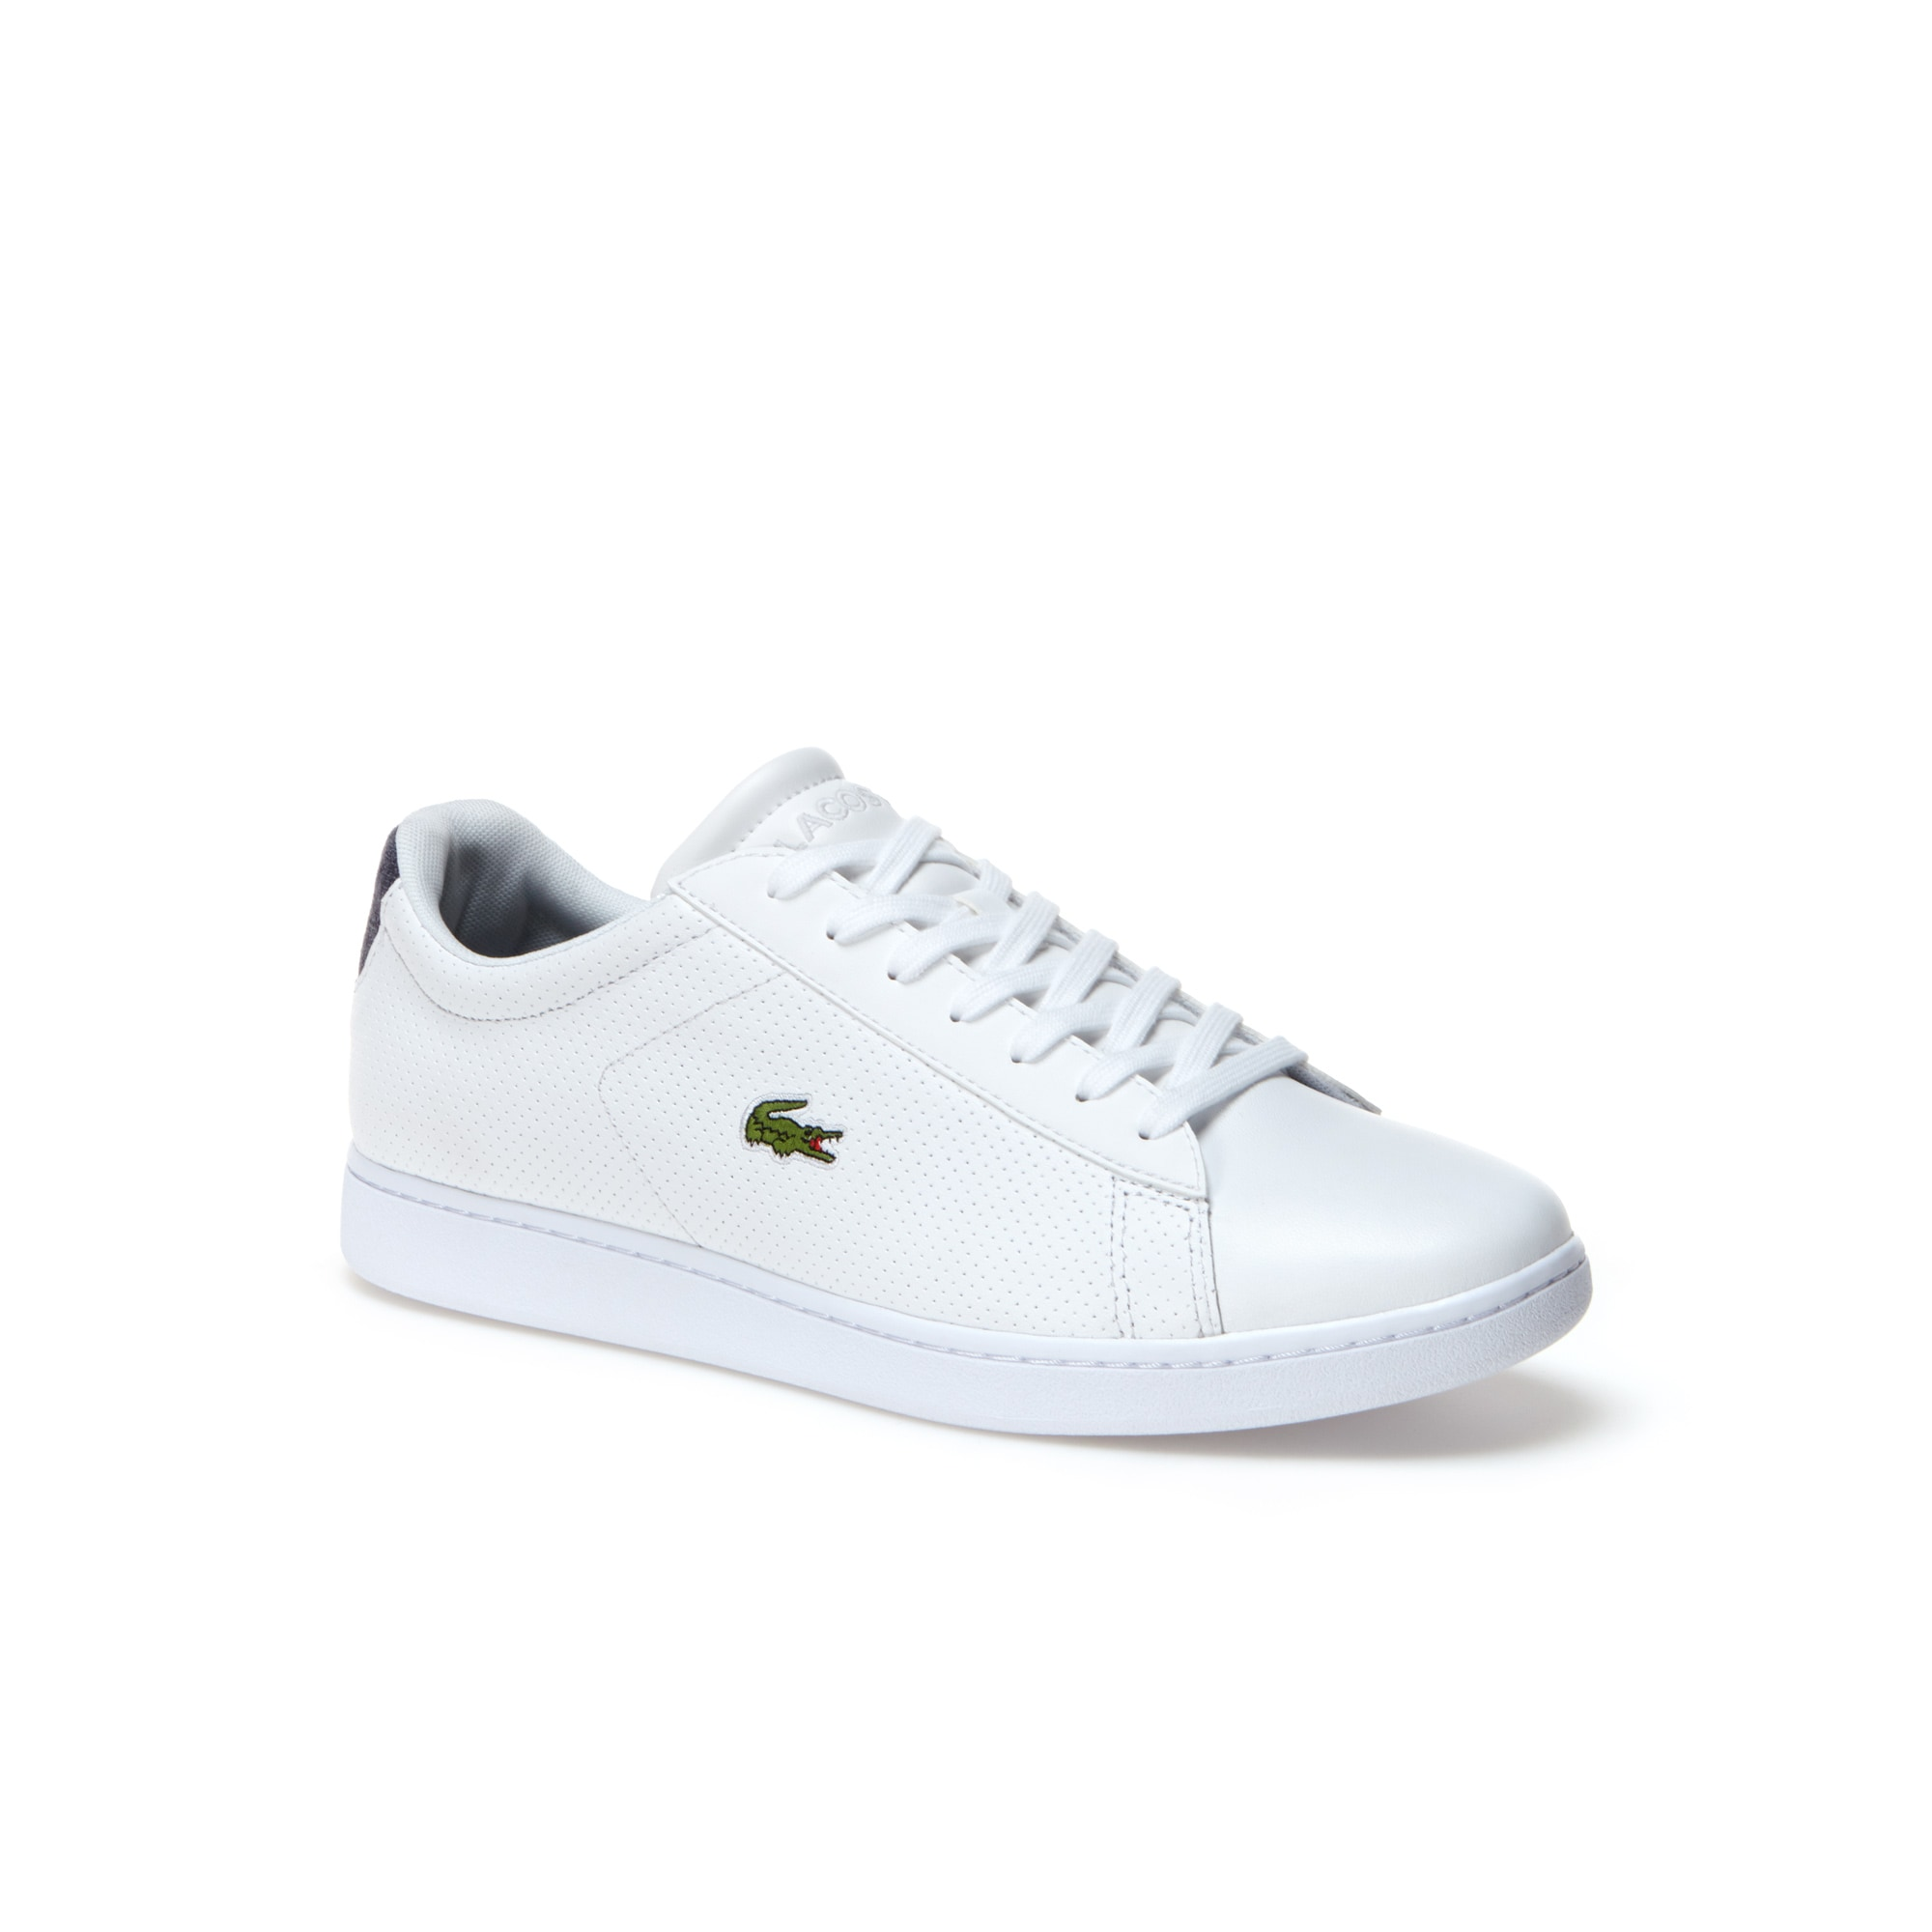 Men's Carnaby Evo Perforated Leather Sneakers